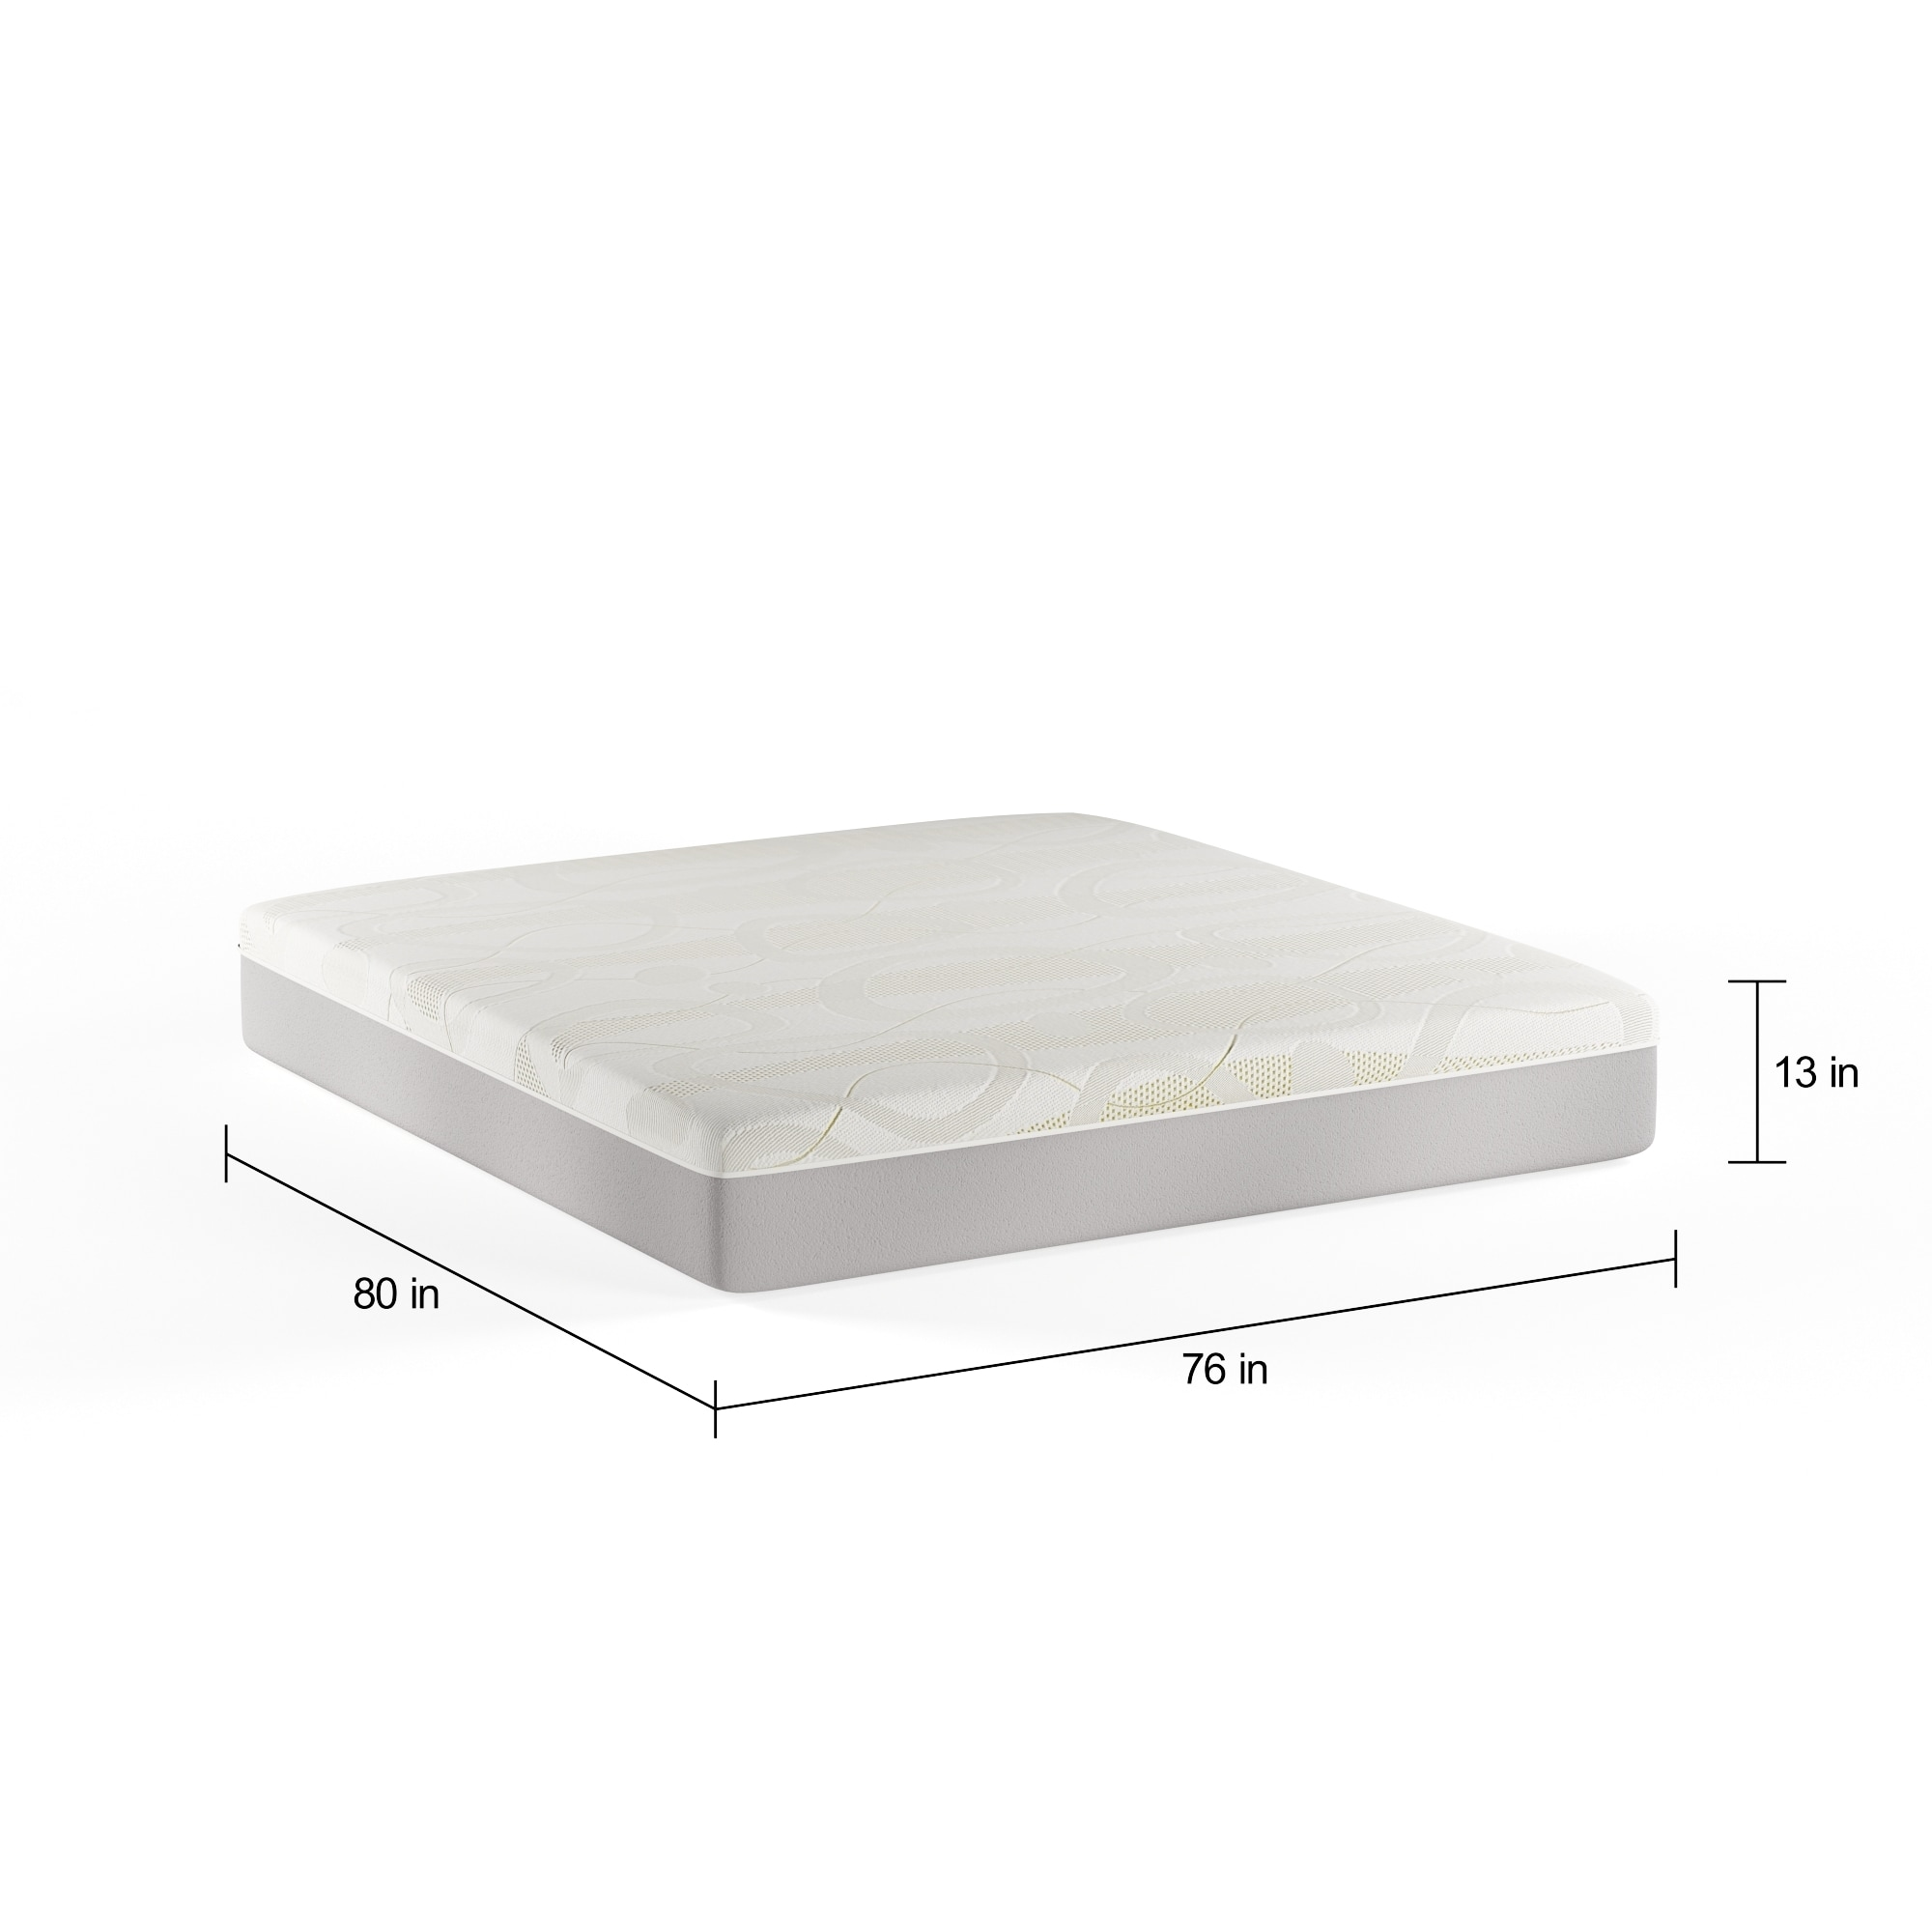 firm gel medium luxury foam inch mattress ip com size select king walmart memory